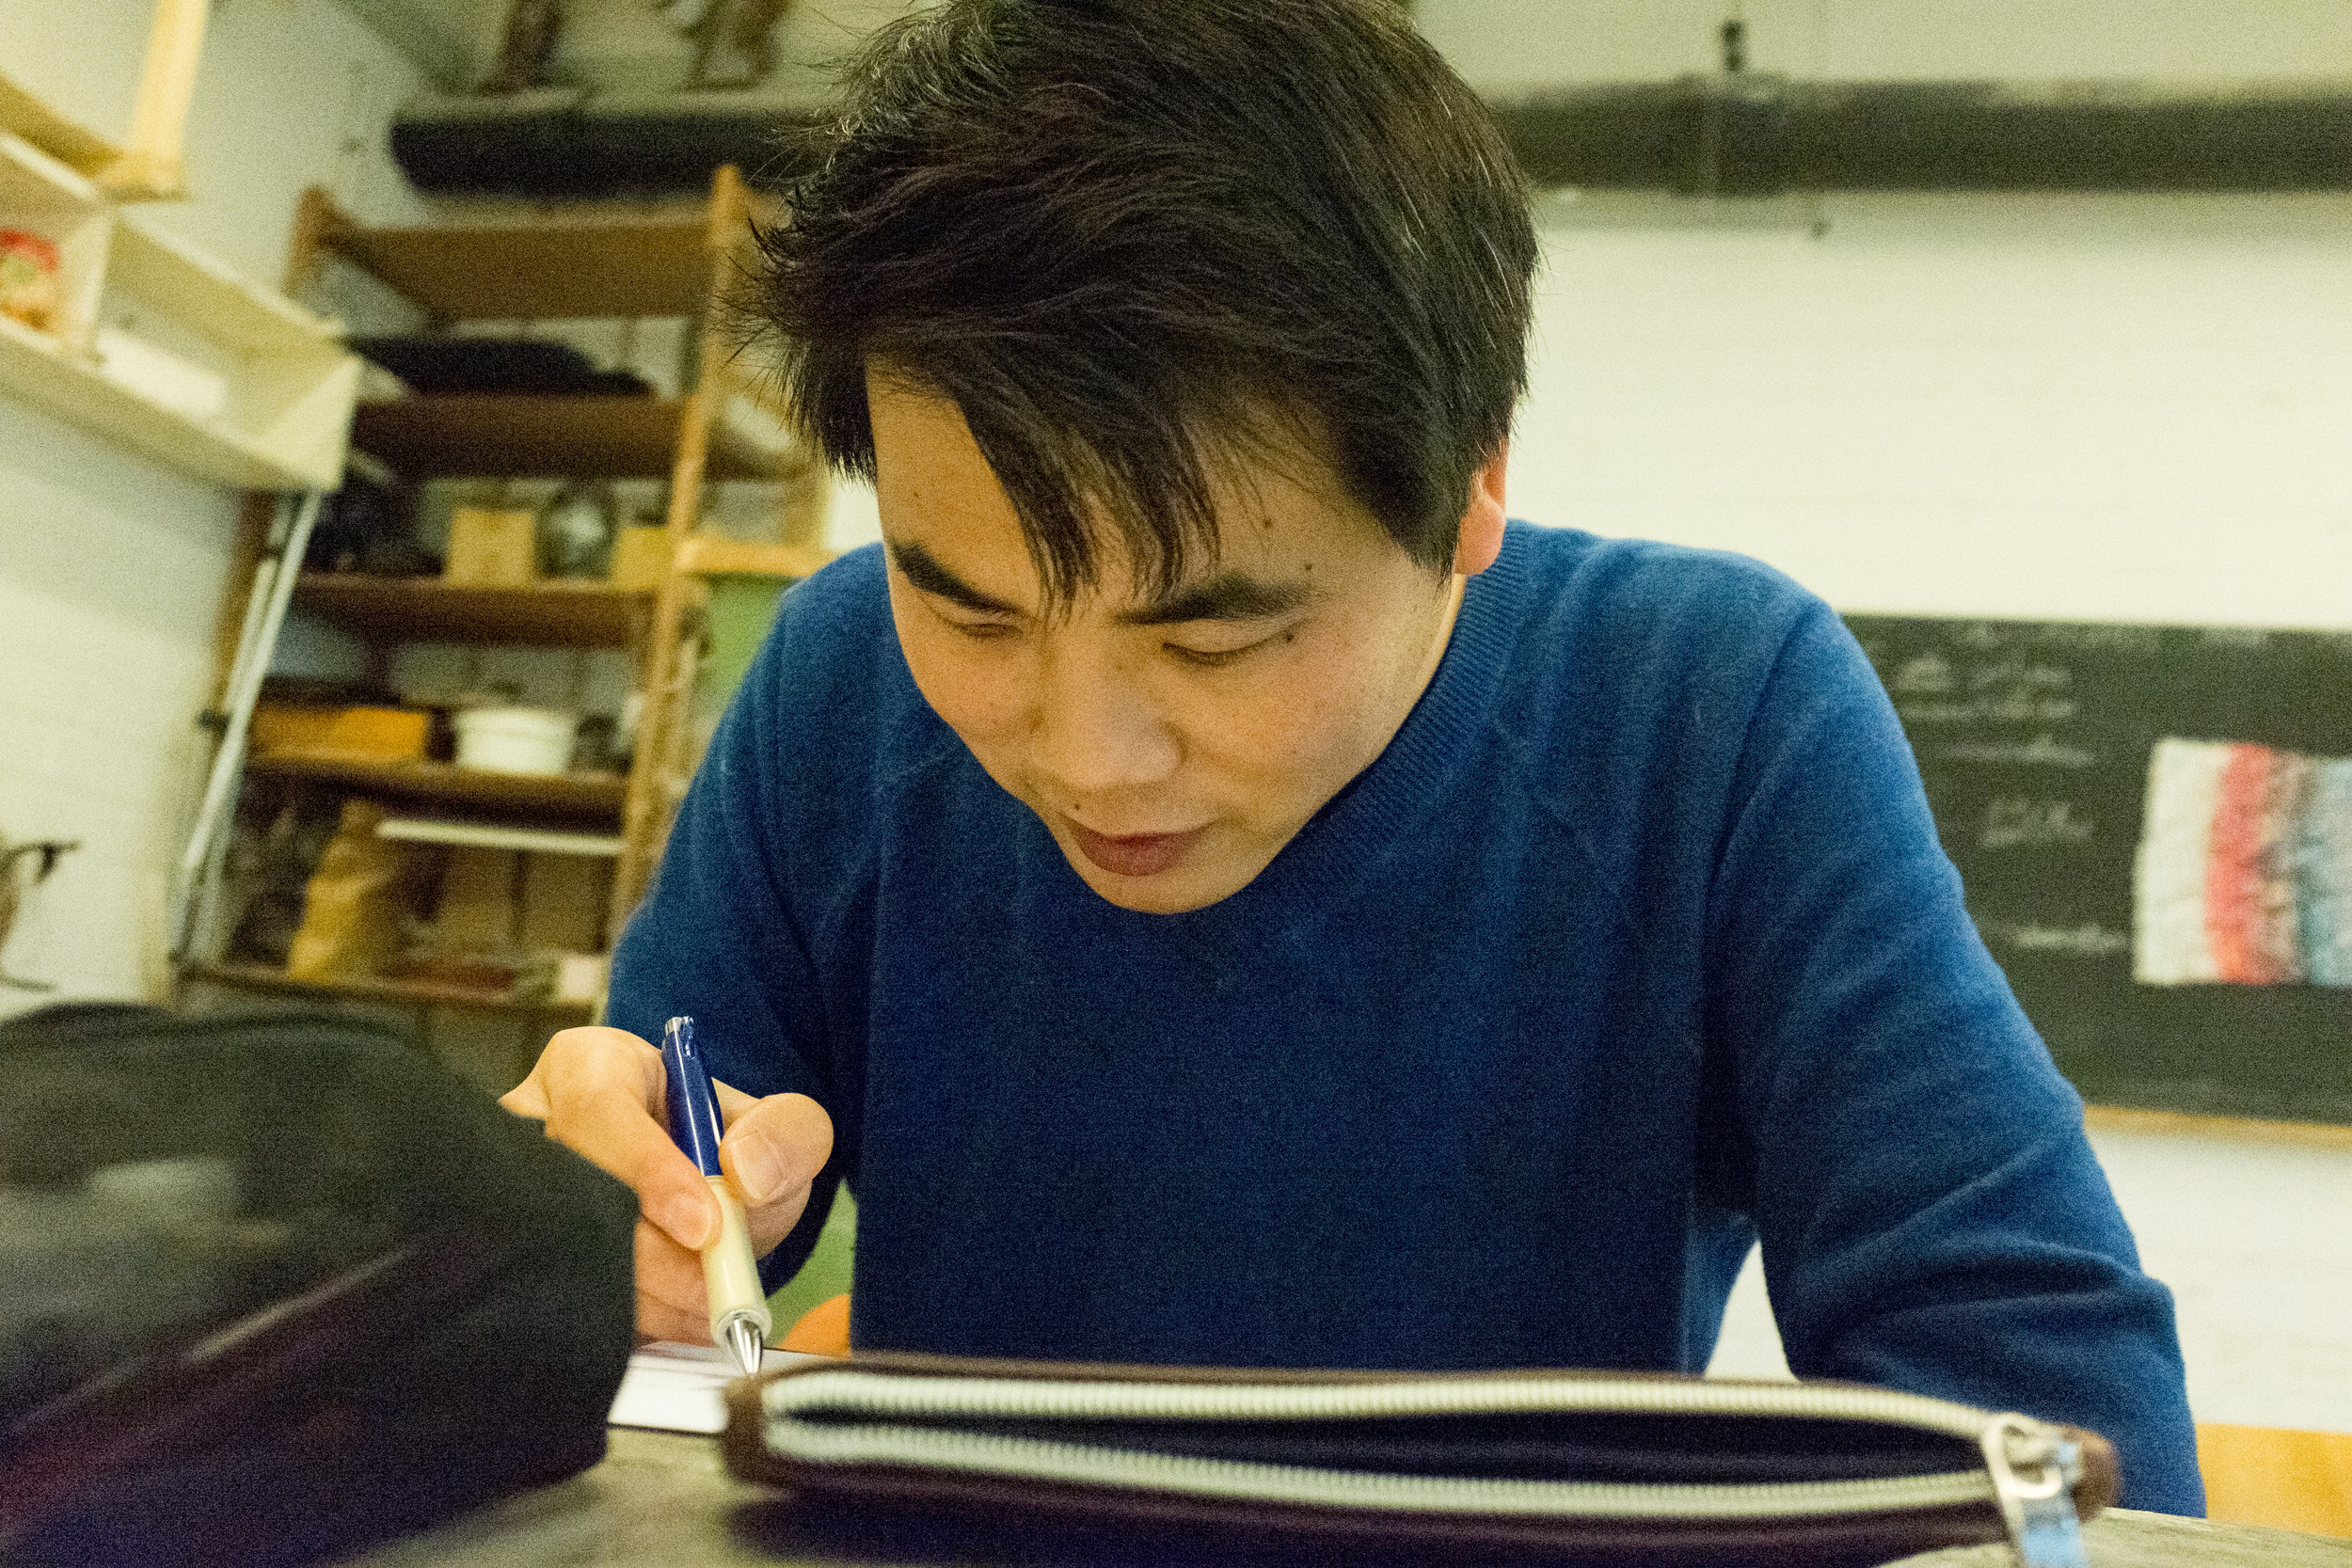 Wei is drawing his sketching